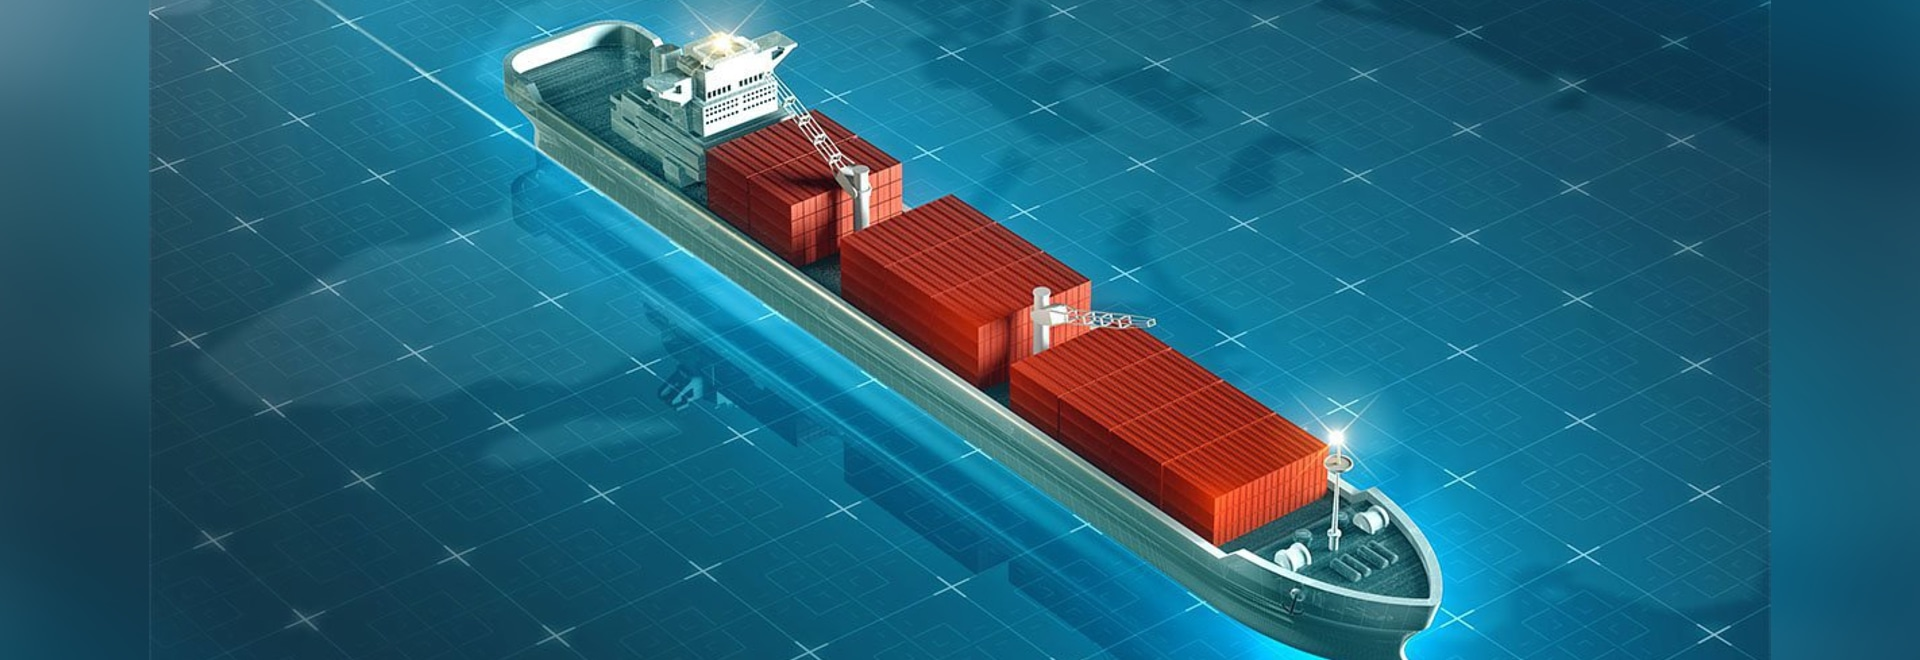 ABS joins Unmanned Cargo Ship Development Alliance